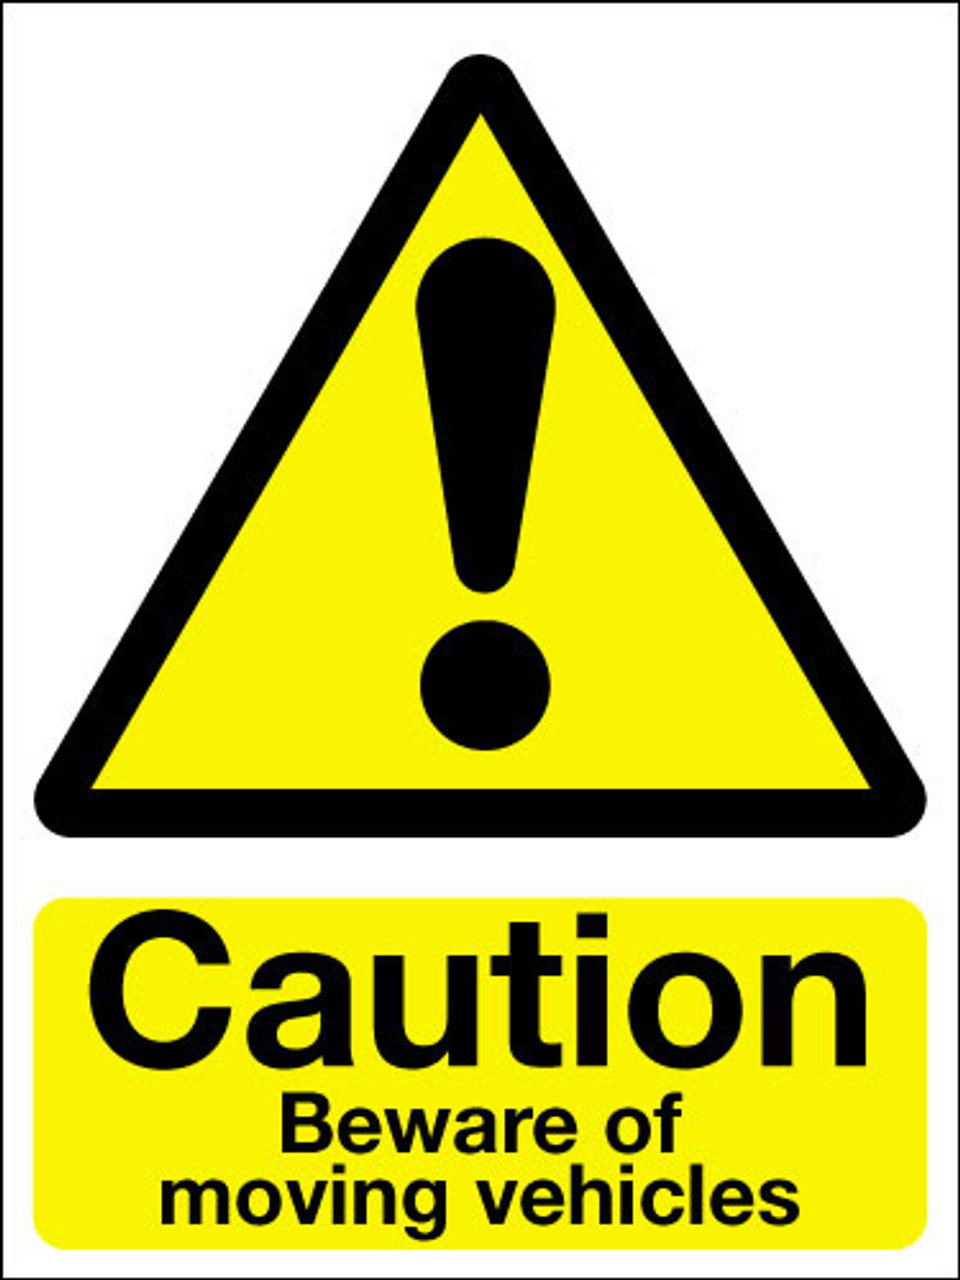 Caution beware of moving vehicles sign